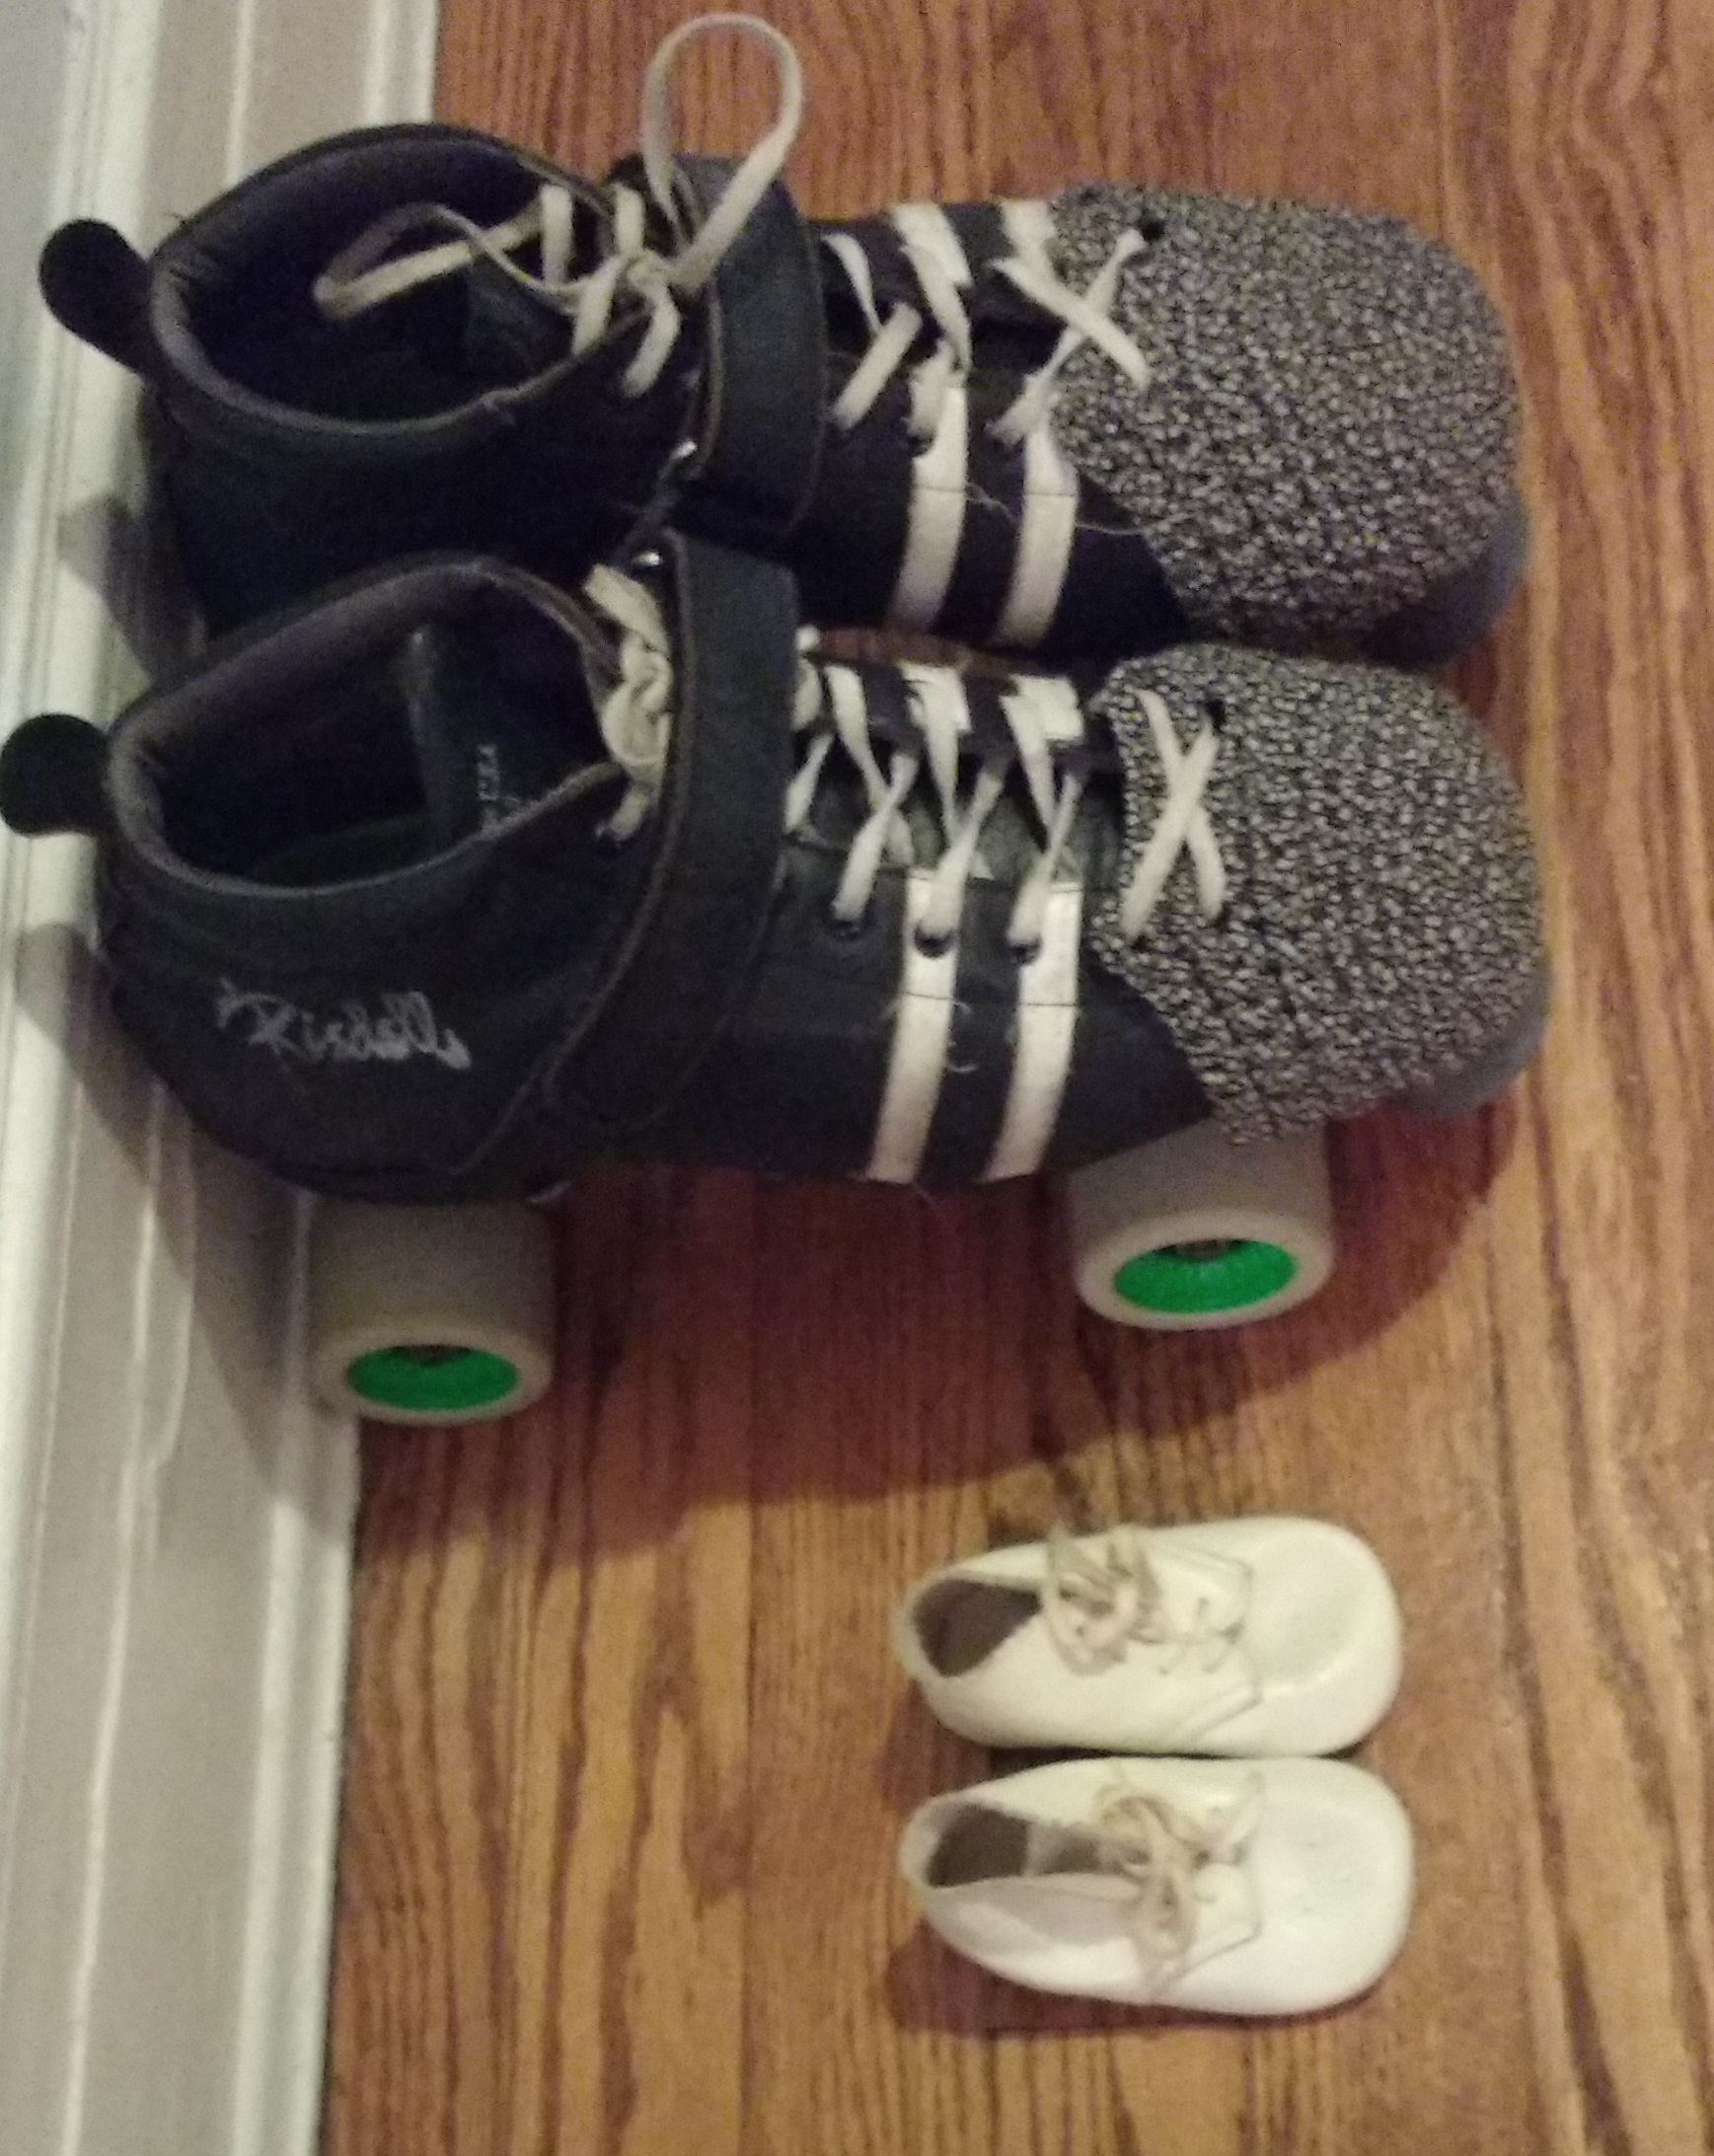 skates and baby shoes